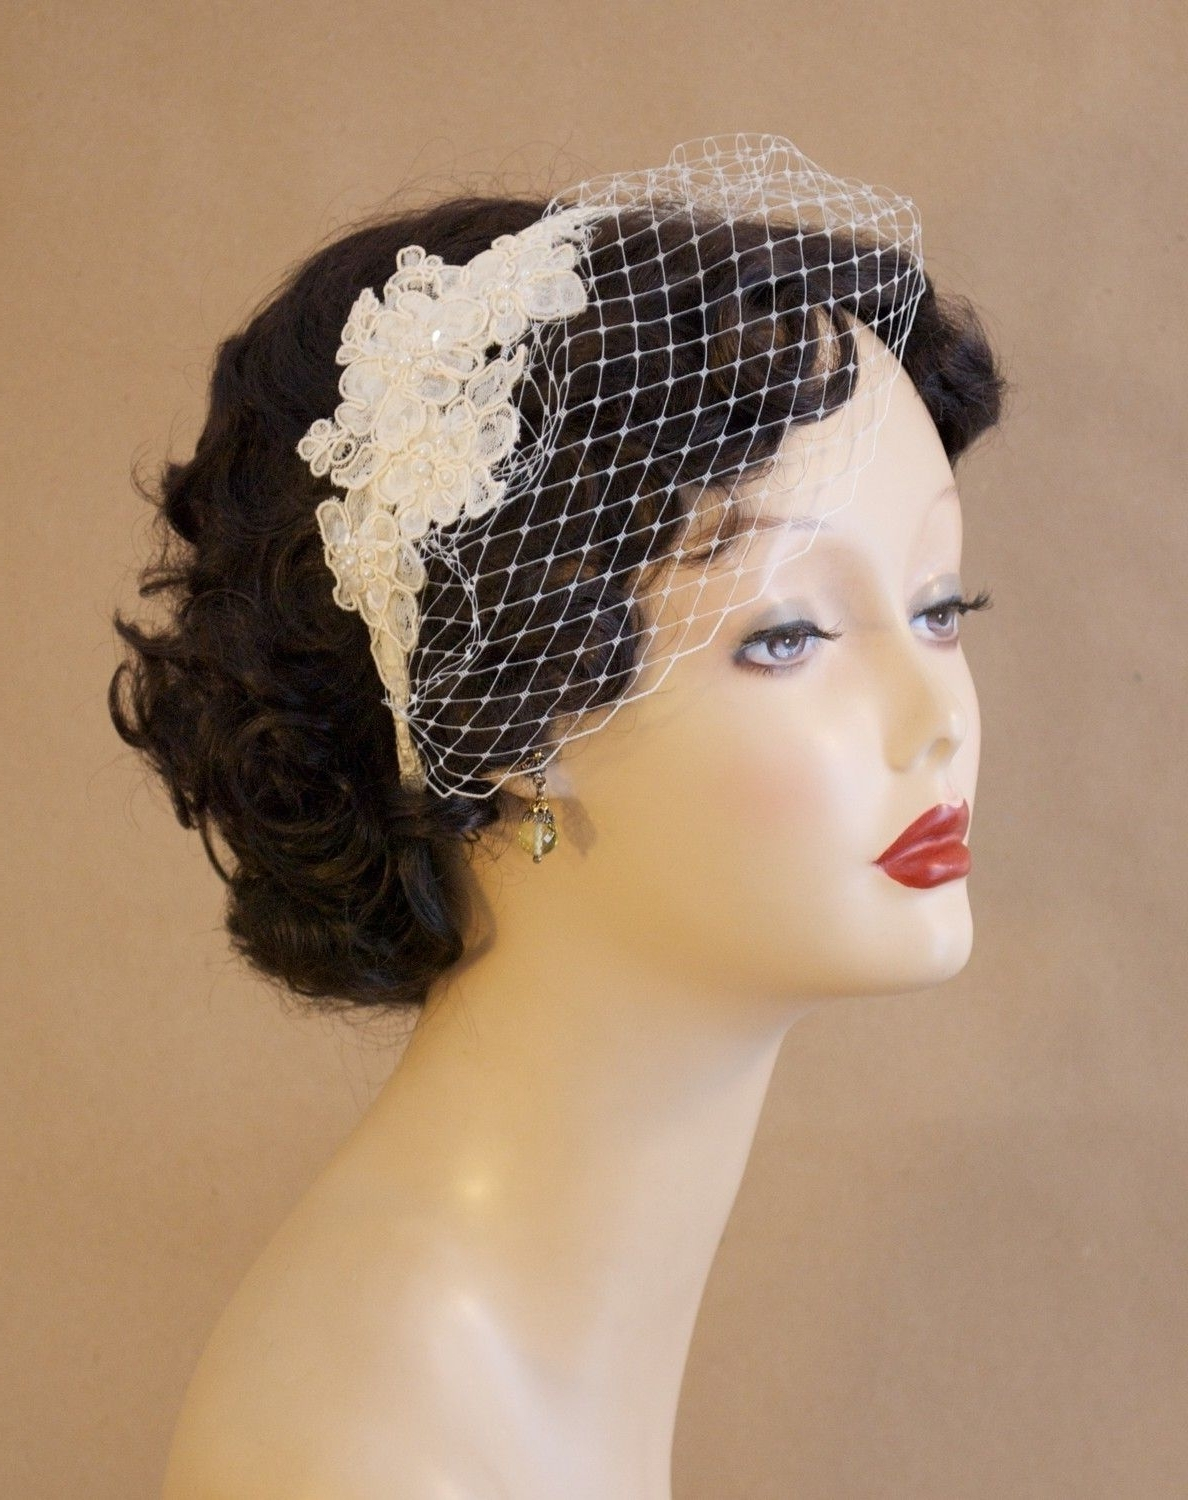 Most Current Wedding Hairstyles For Long Hair With Birdcage Veil Intended For Bridal Birdcage Veil Blusher With Alencon Lace, Bead, And Sequin (View 11 of 15)